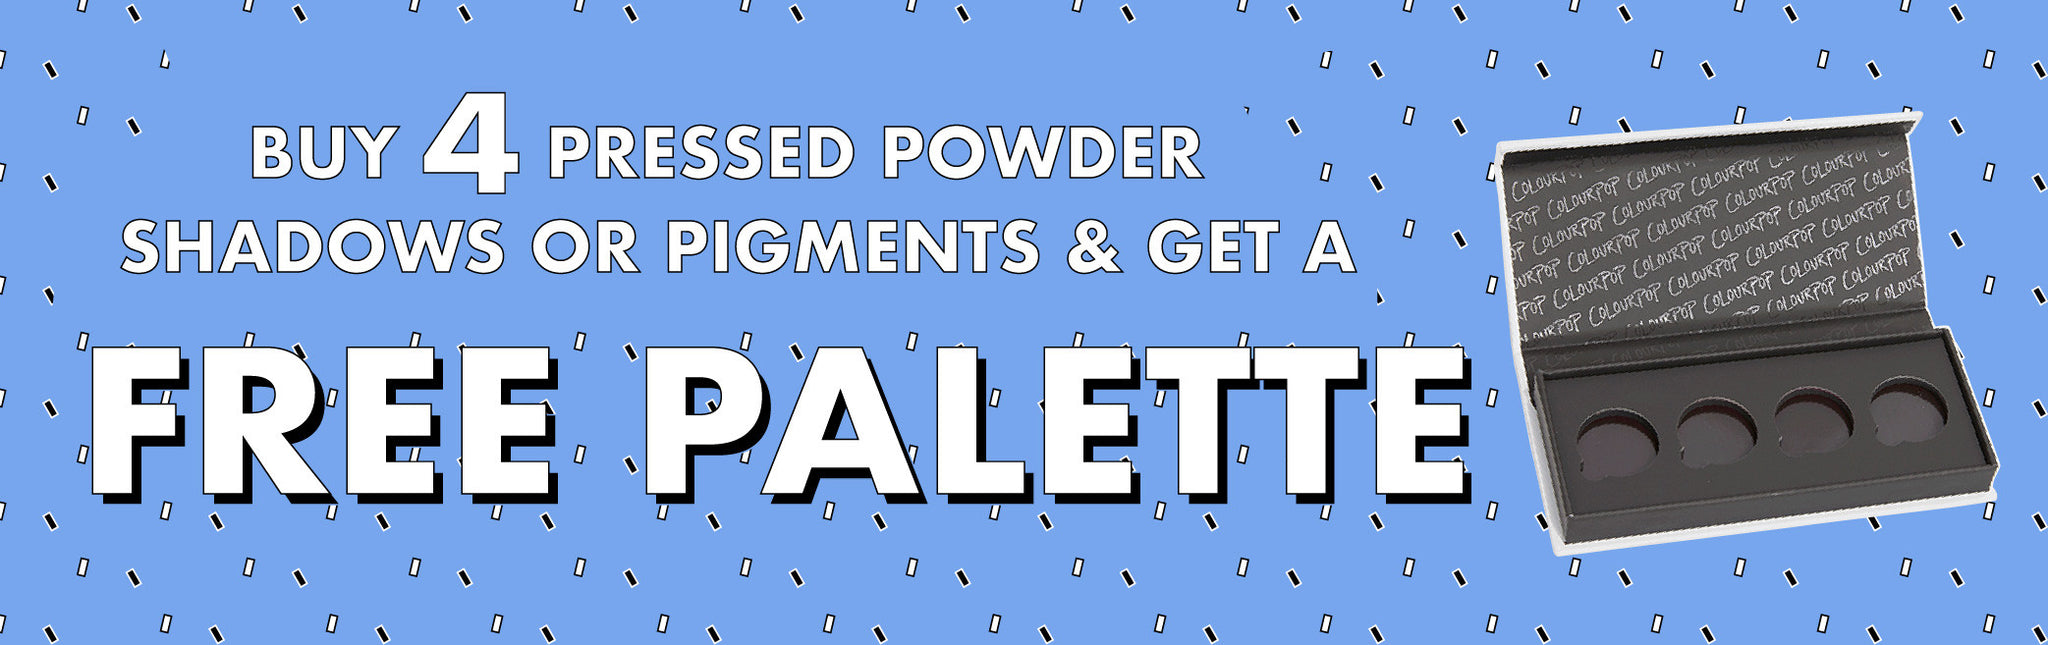 Buy 4 Pressed Powder Shadows or Pigments & Get a Free Empty Palette Promo Banner